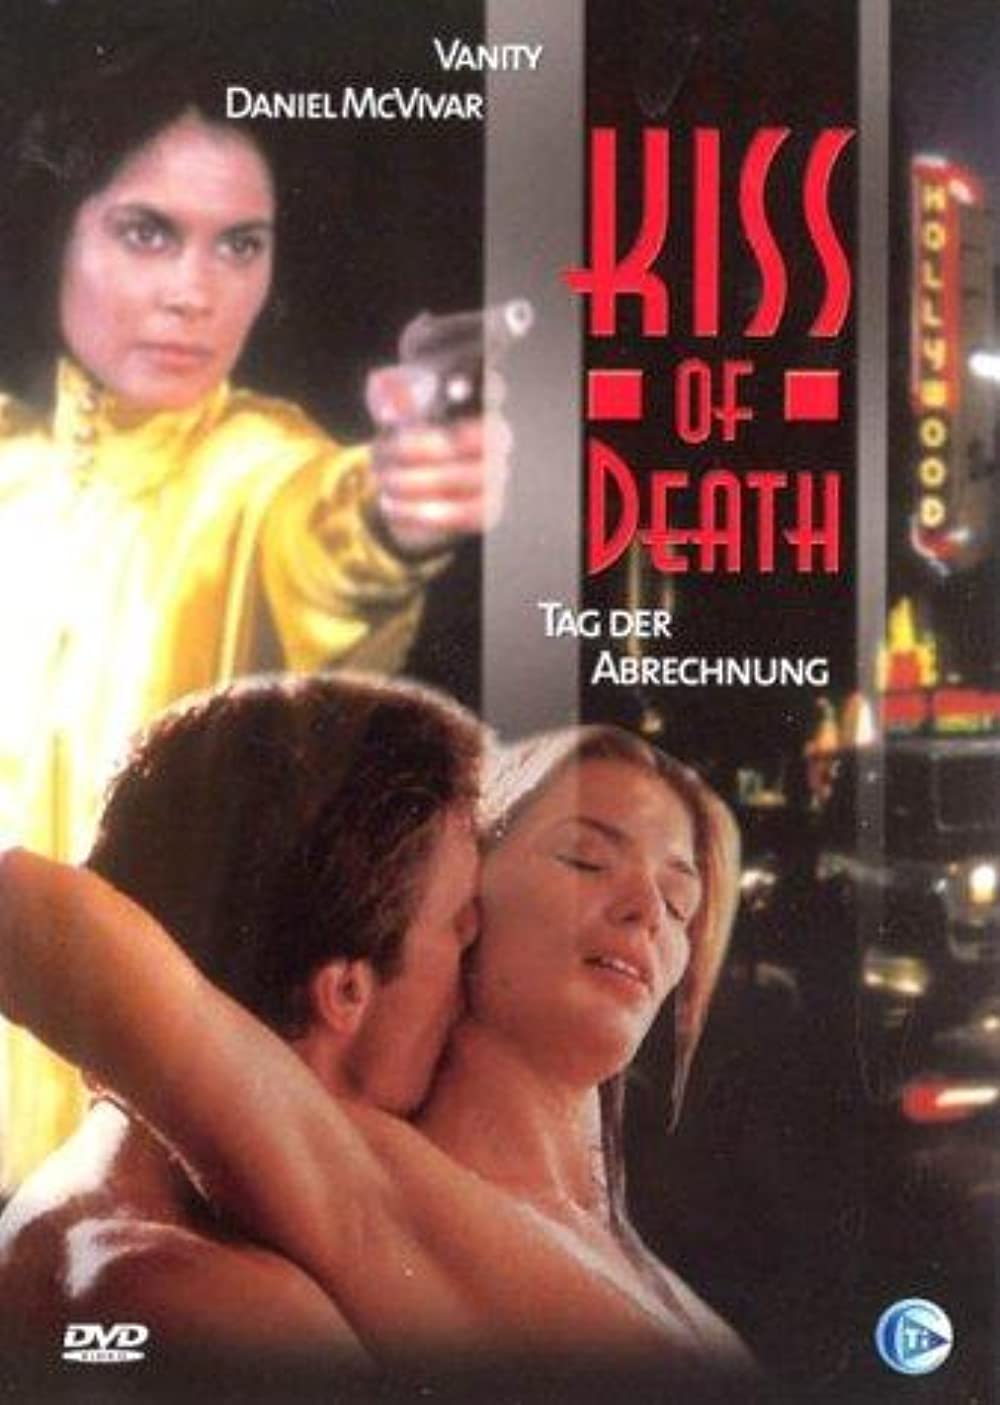 18+ Kiss of Death 1997 Hindi Dual Audio 480p UNRATED DVDRip 350MB x264 AAC